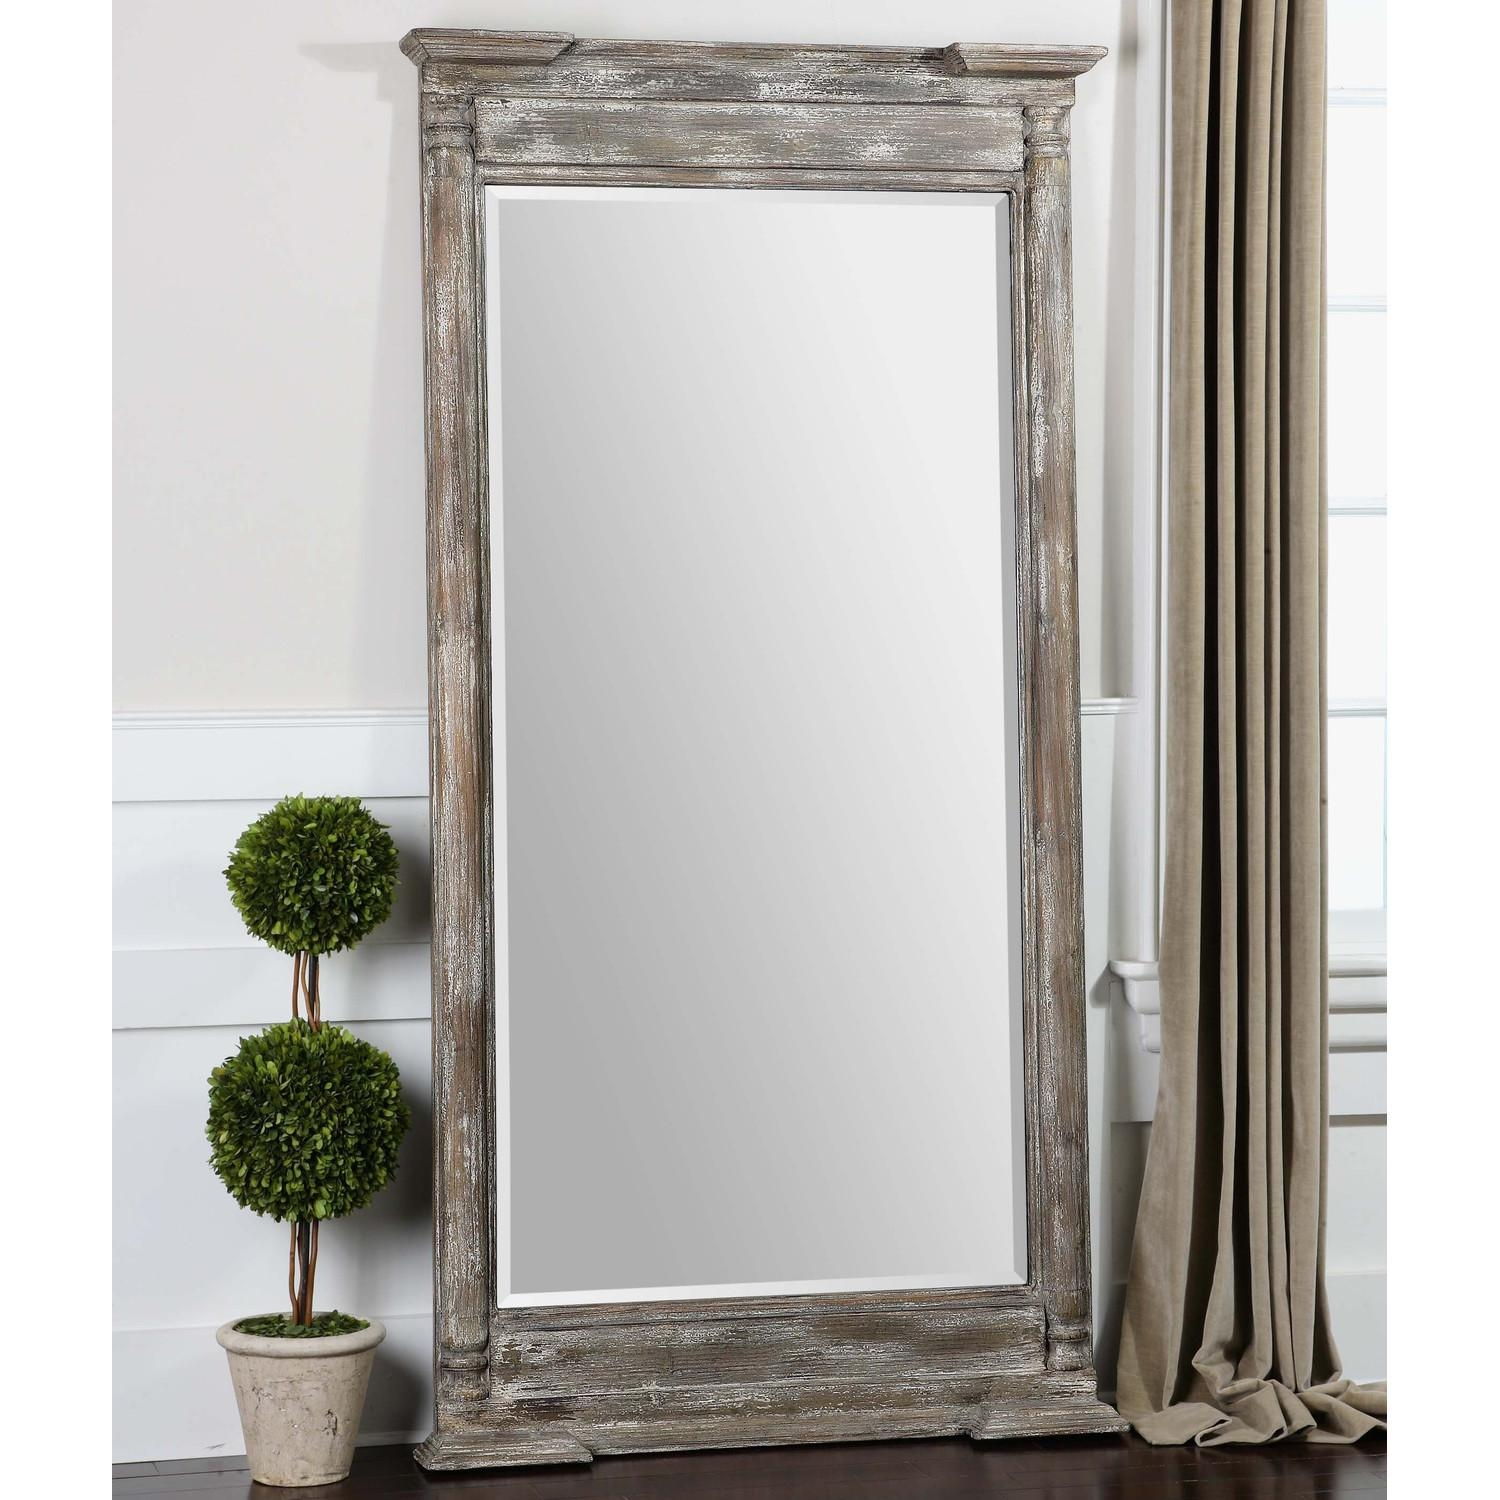 Oversized Floor Mirrors Cheap | Floor Decoration With Regard To Full Length Mirror Vintage (Image 17 of 20)